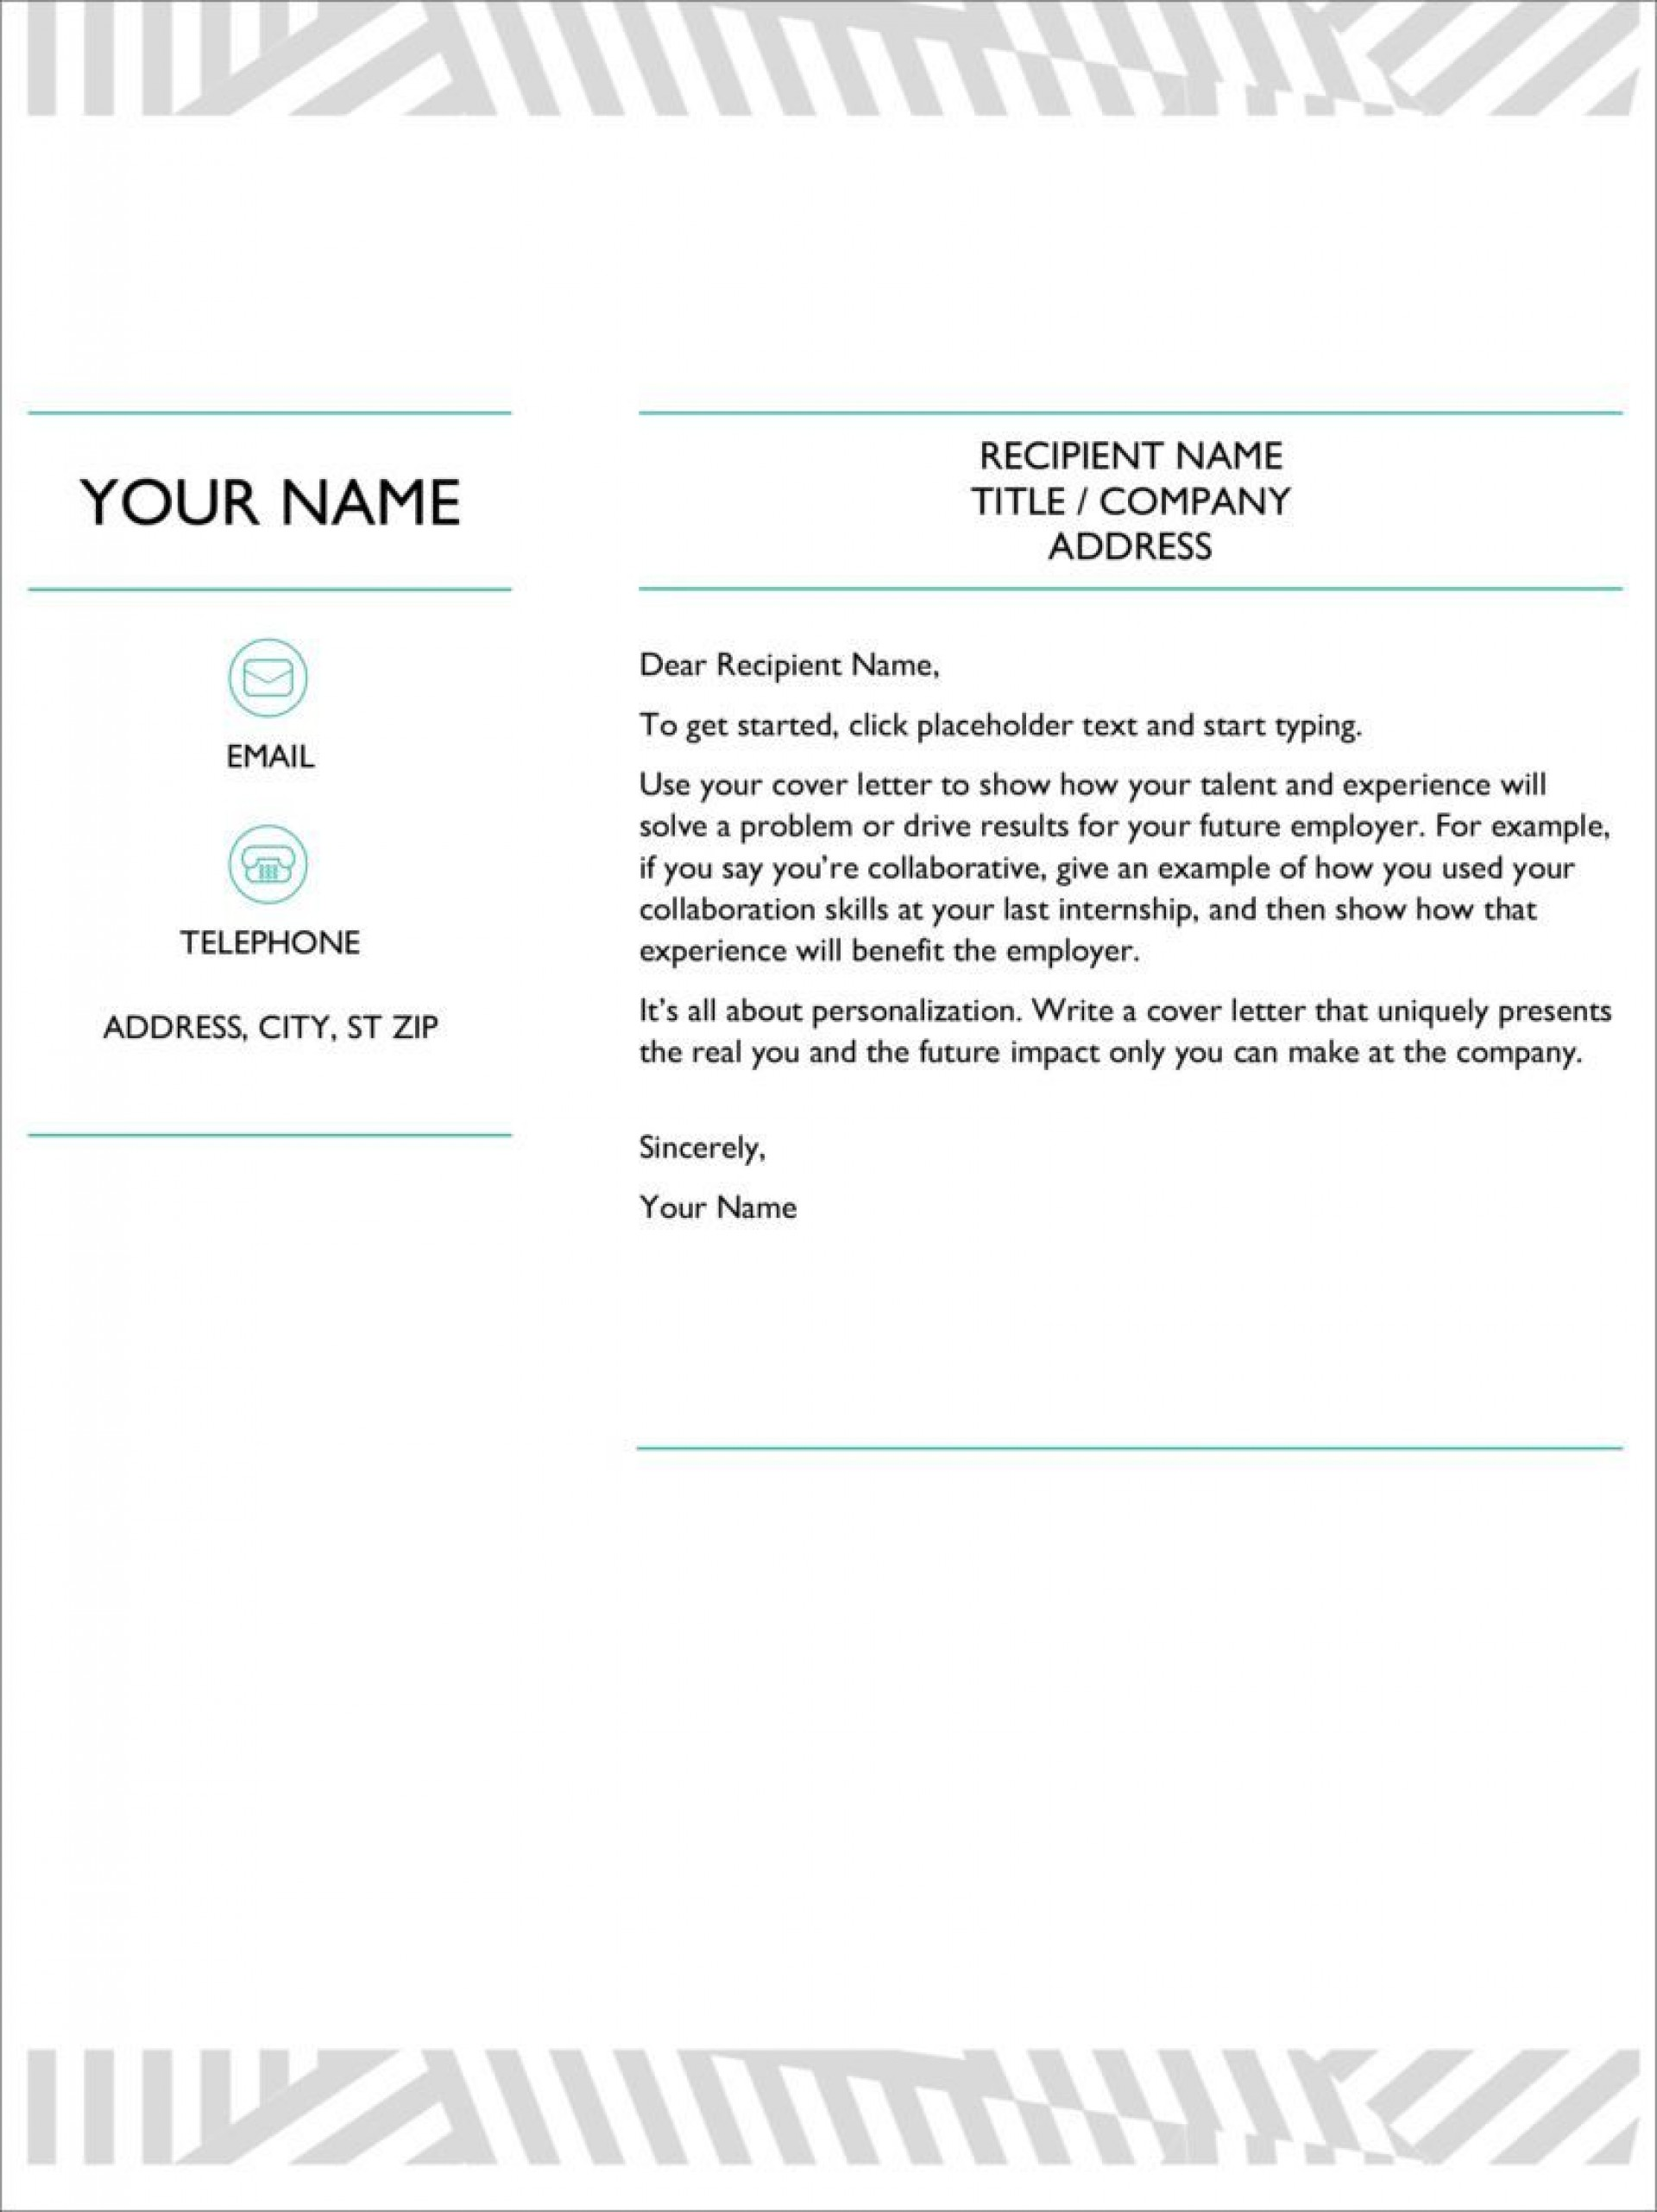 004 Rare Cover Letter Template Download Microsoft Word Image  Free Resume1920